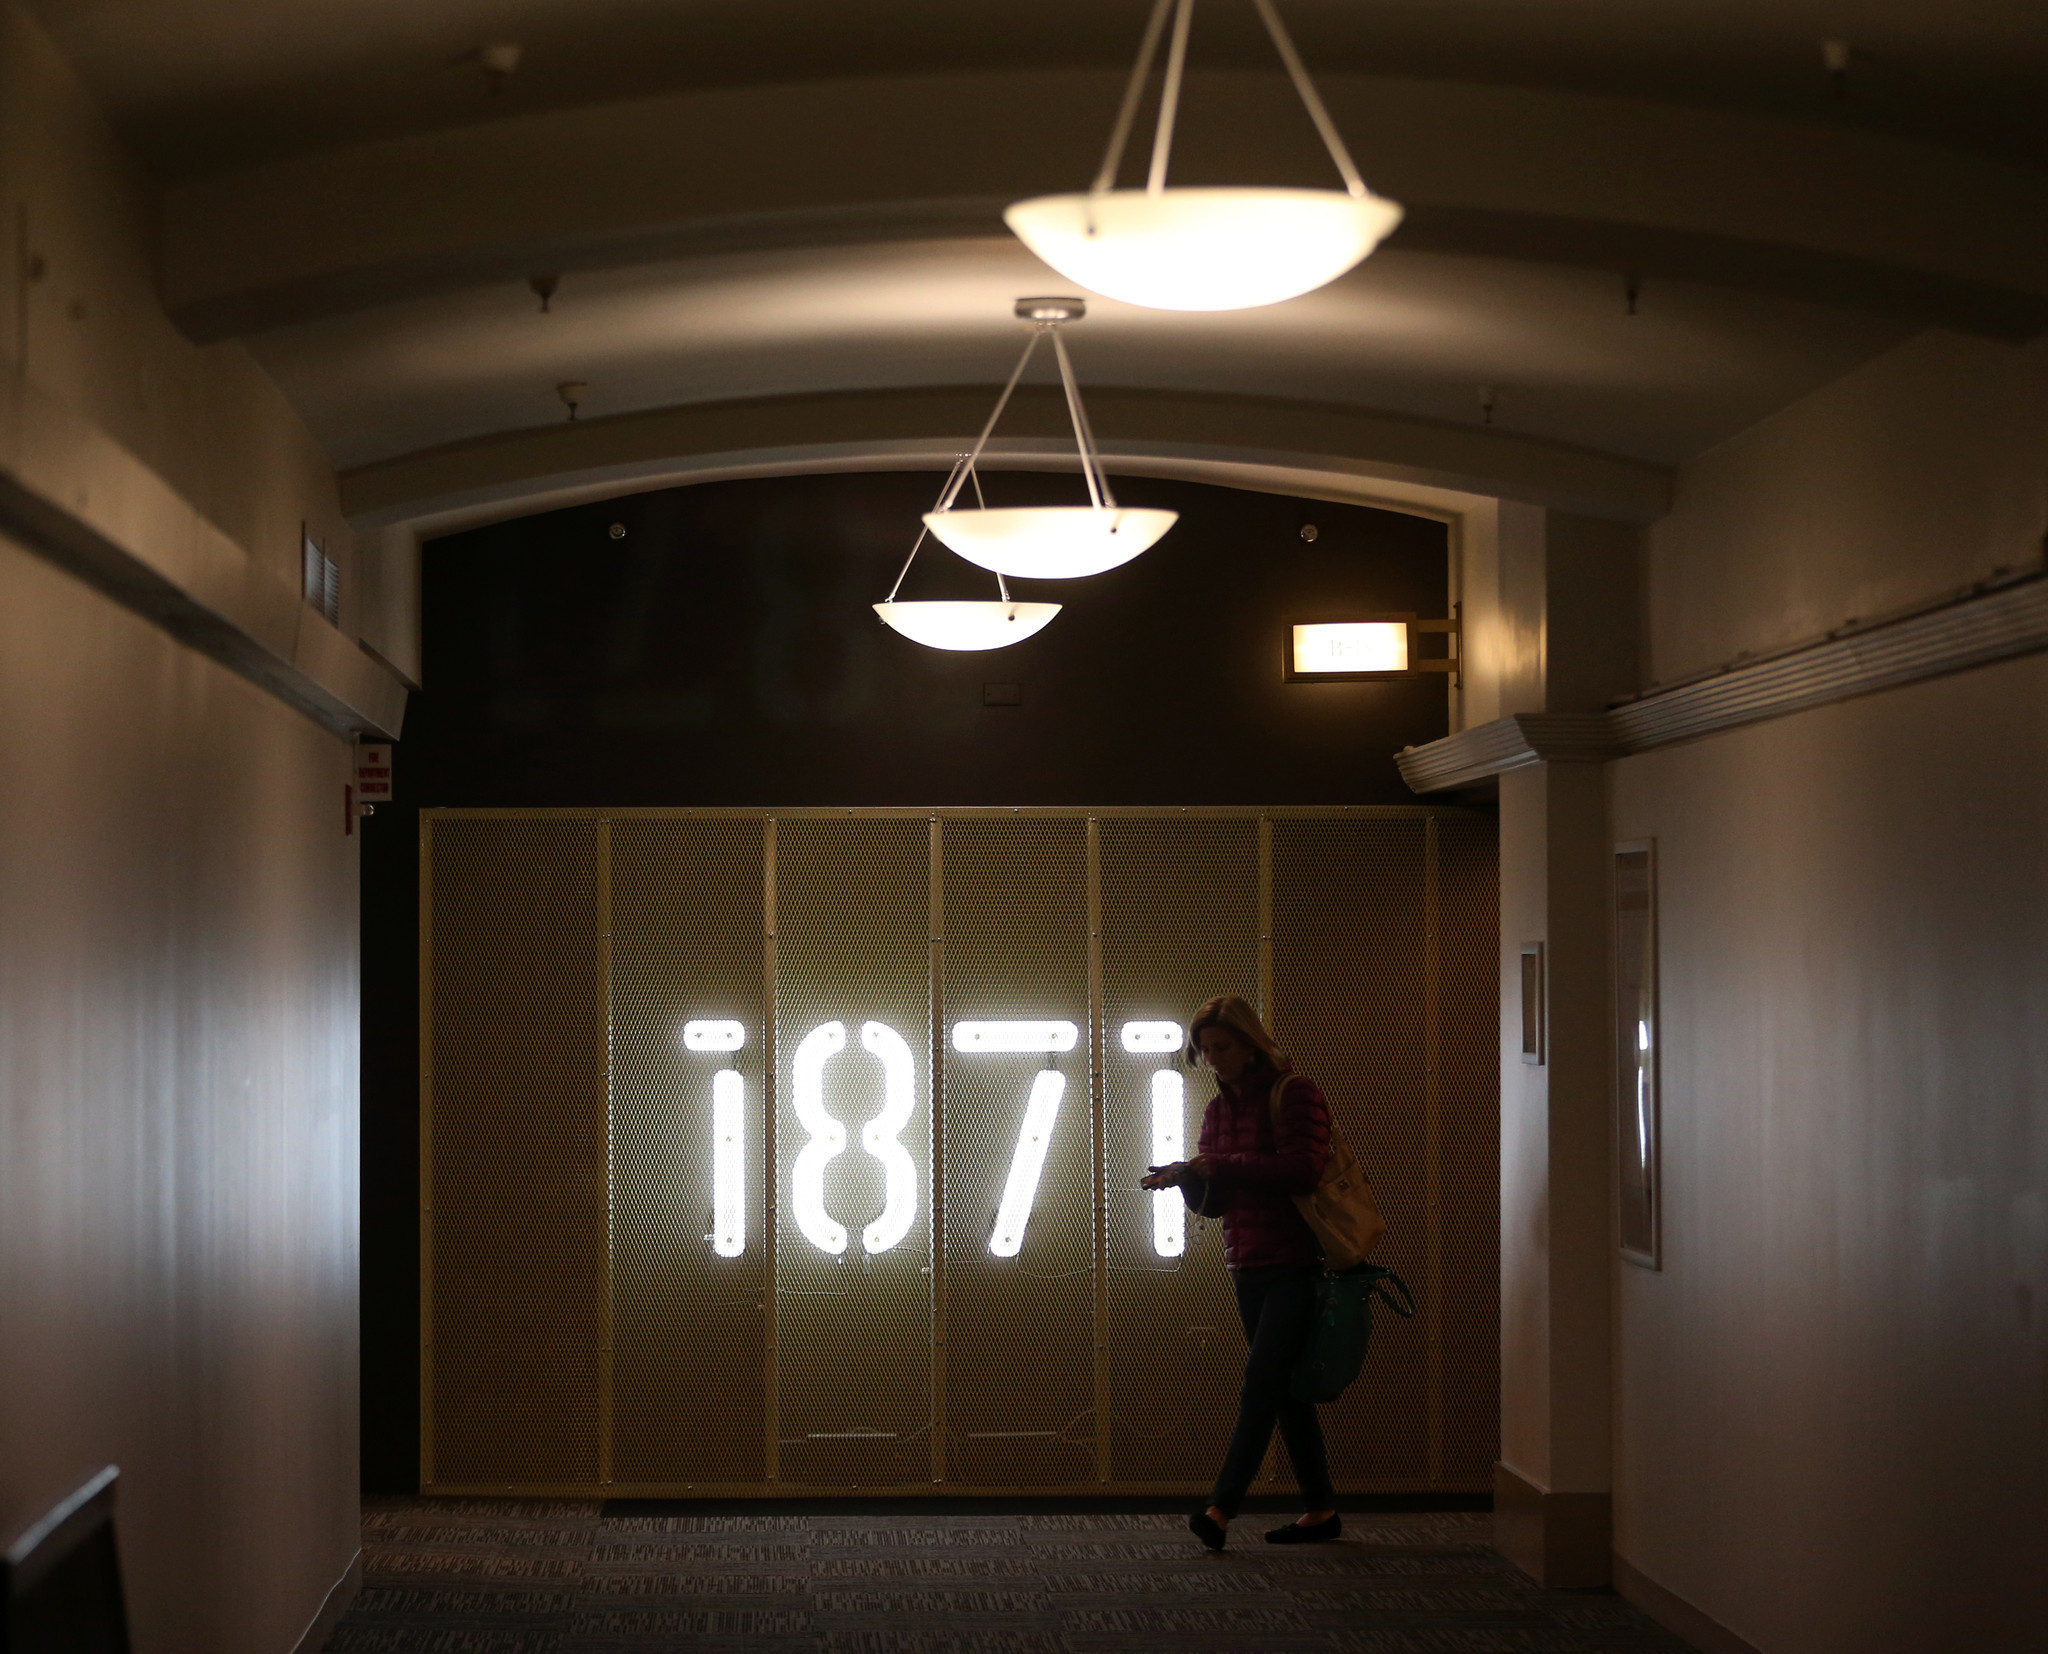 Successful woman technology leader needed at Chicago's 1871